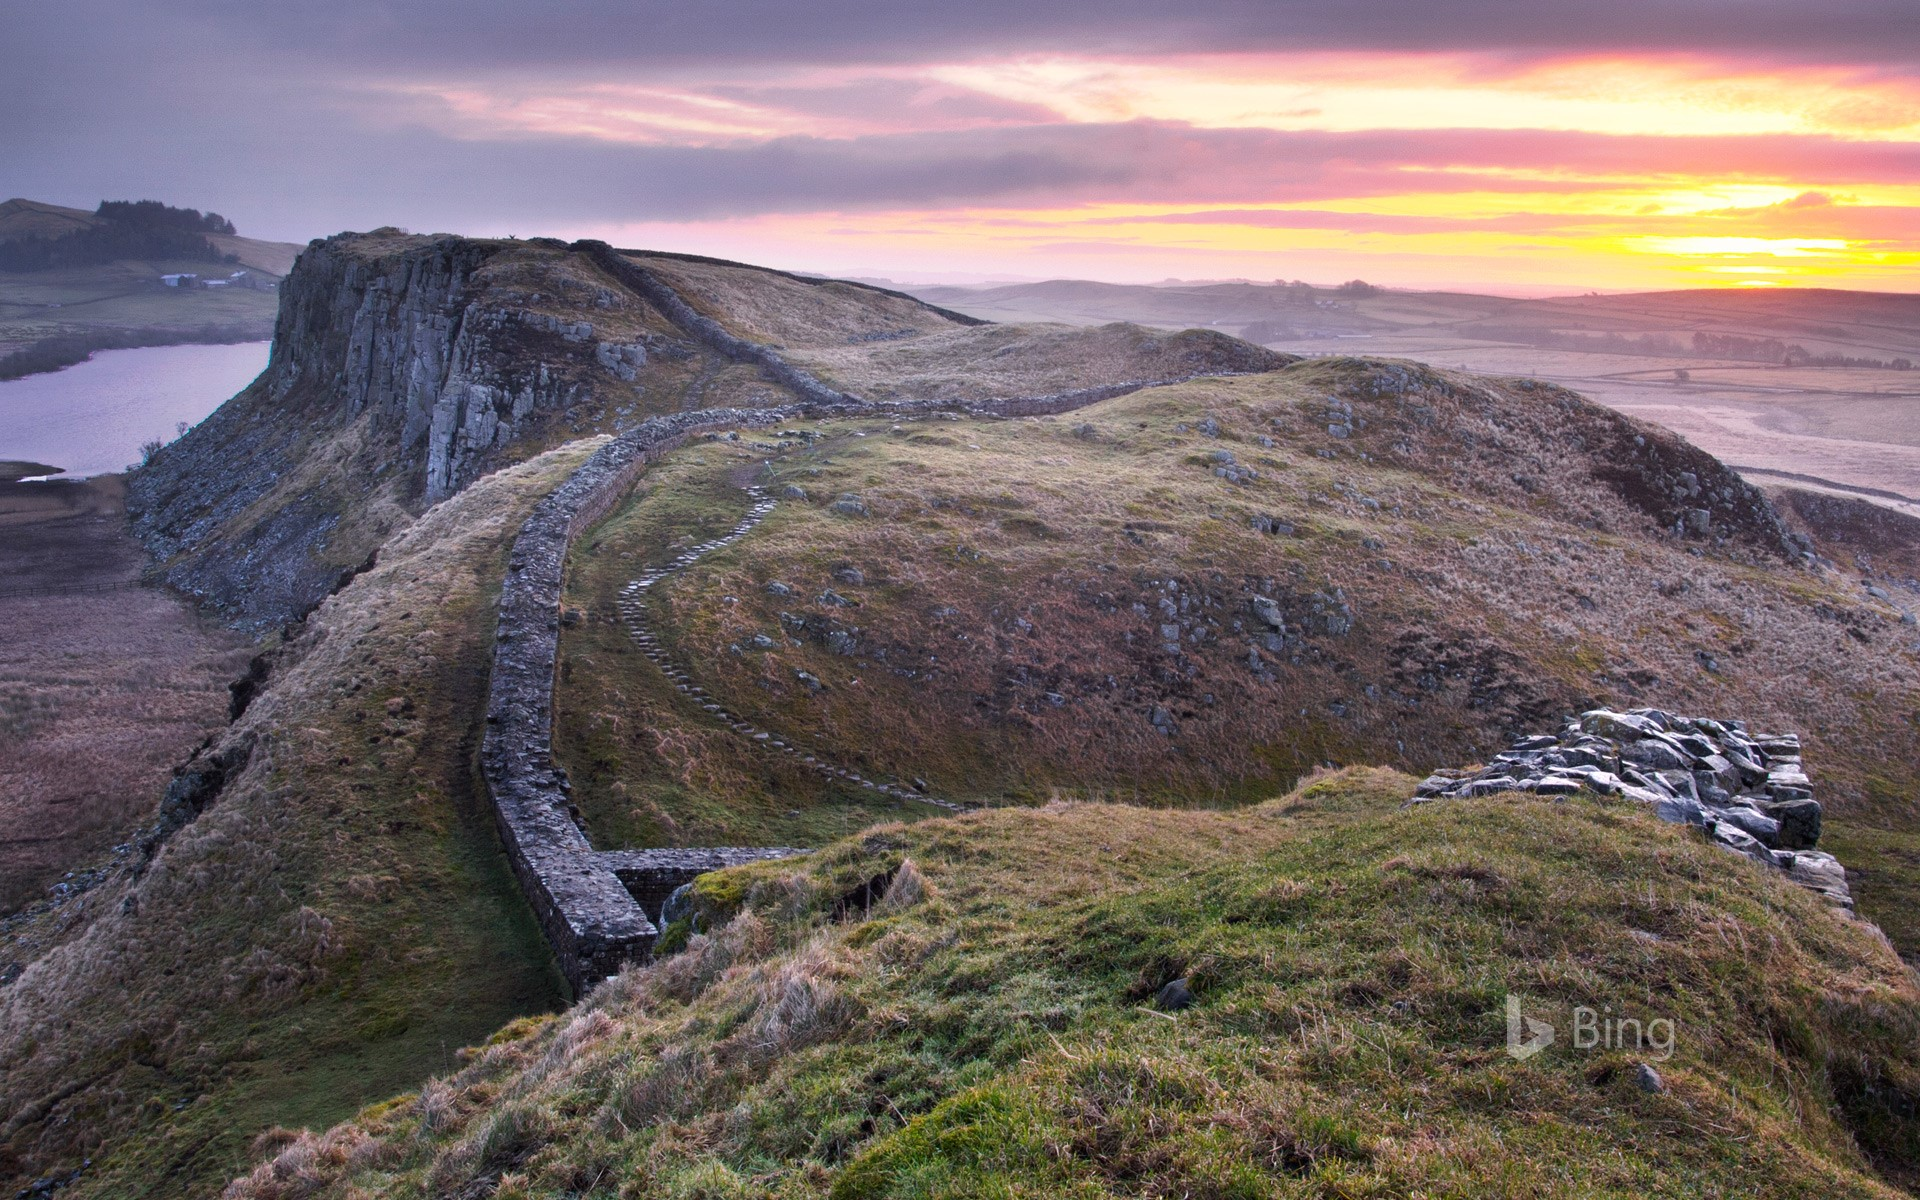 Sunrise over Hadrian's Wall at Steel Rigg in Northumberland, England